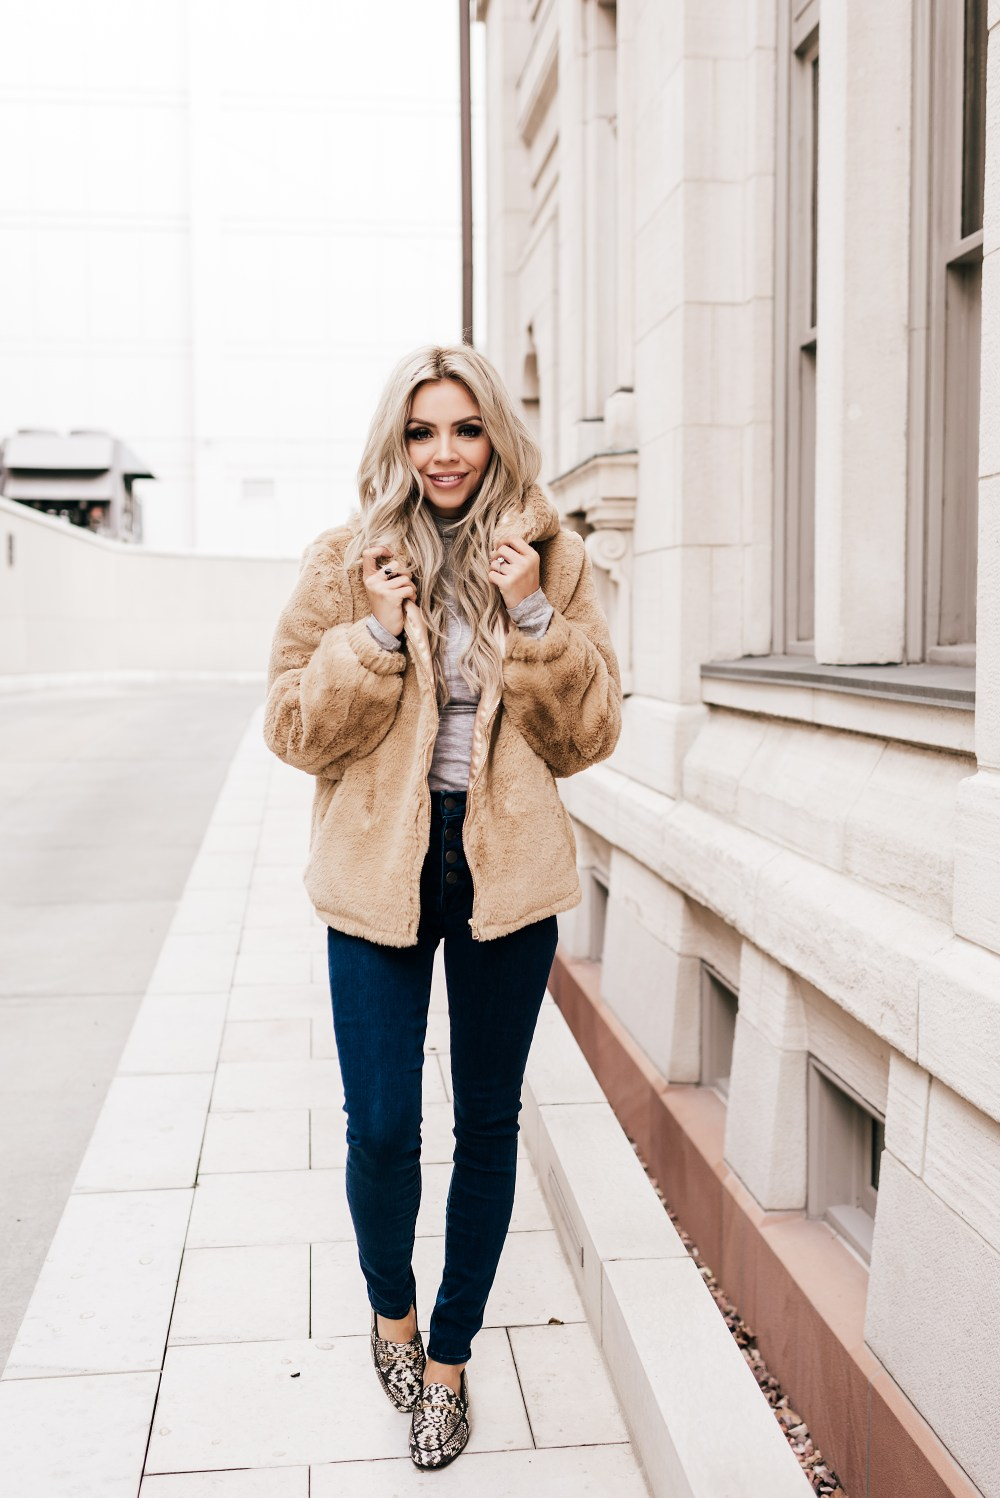 This Teddy Jacket is perfect for Valentine's Day and the remaining days of winter! It is incredibly soft and comfortable! The color is the perfect neutral and it can be worn with so much! I'm swooning over these snake skin shoes too! #trulydestiny #teddyjacket #womensfashion #ootd